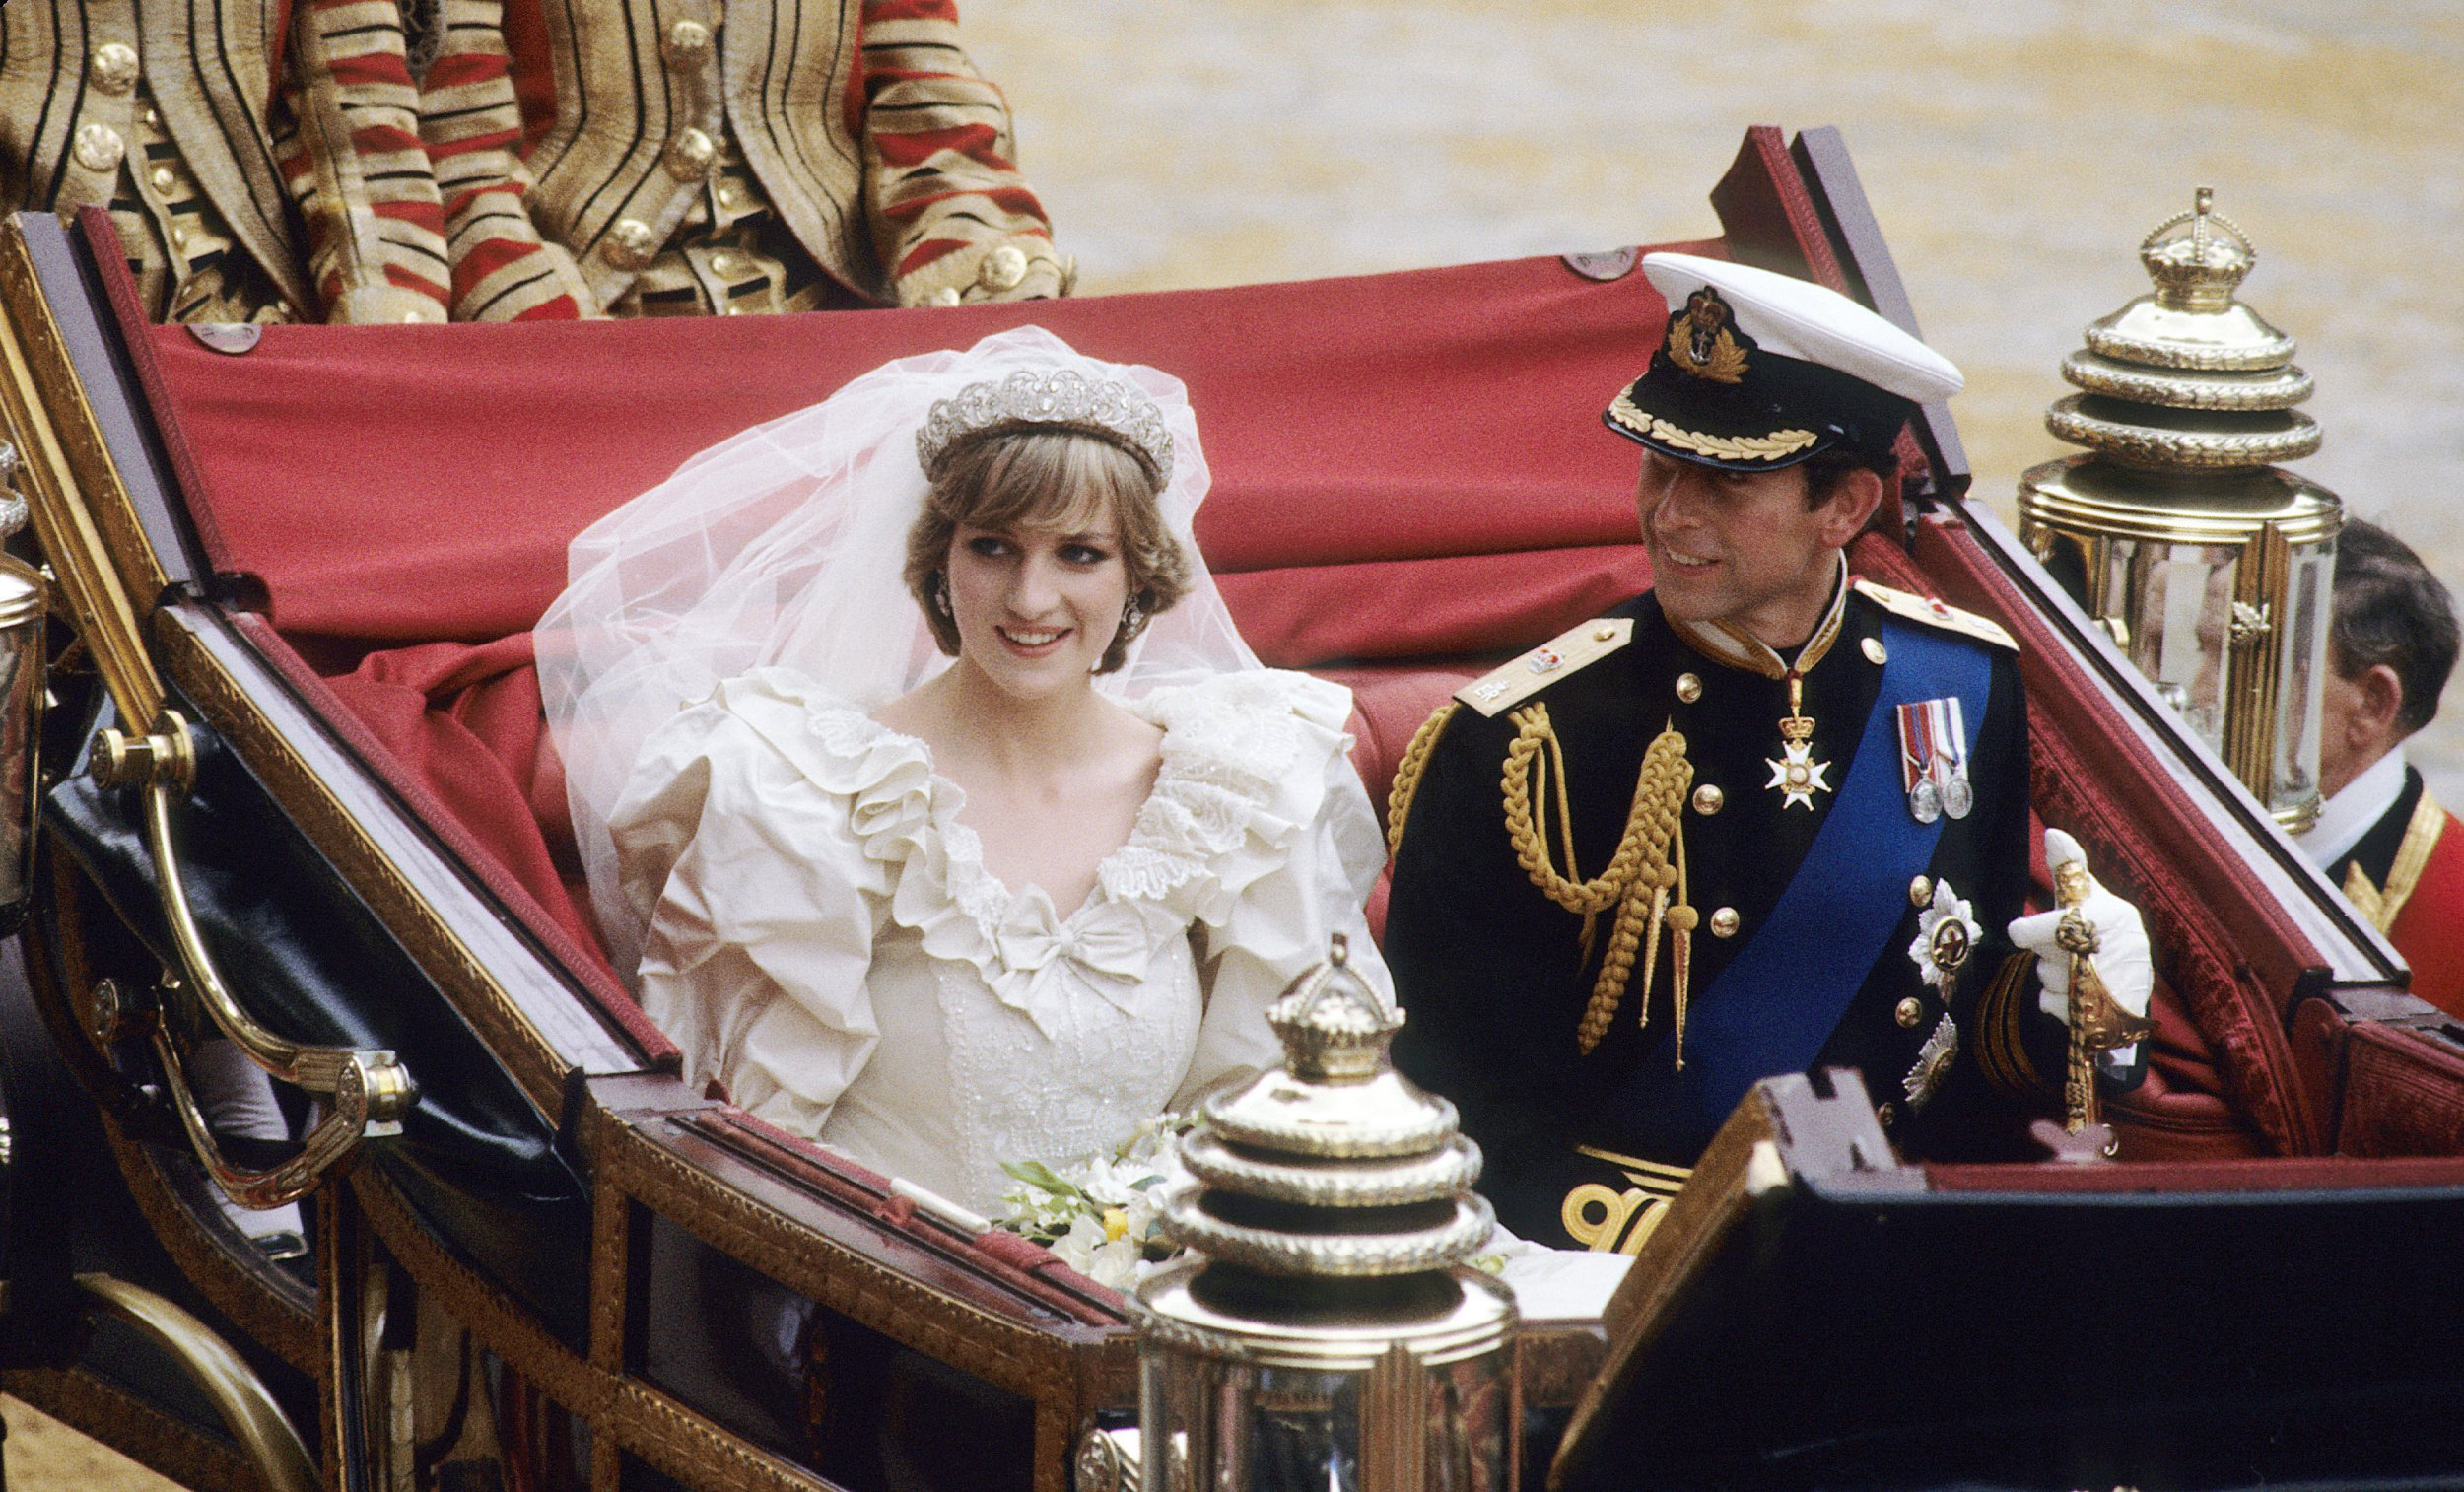 Where did Charles and Diana get married?